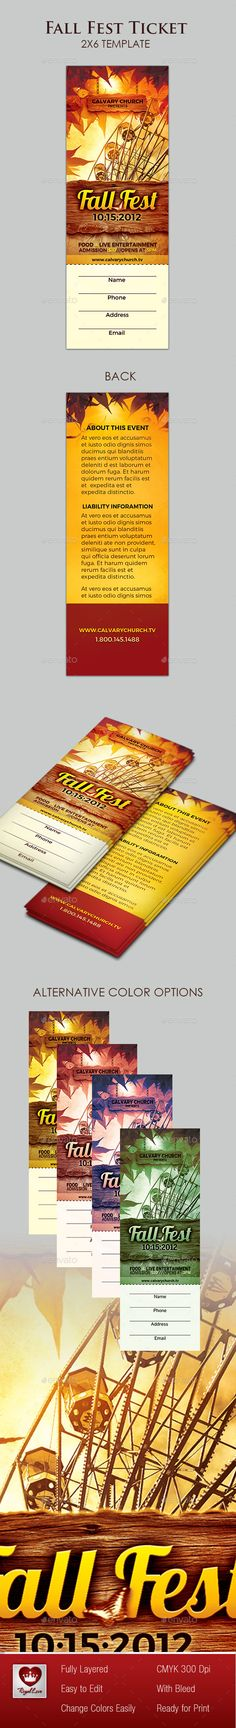 Masquerade Ball Ticket Template Ticket template, Masquerade ball - banquet ticket template